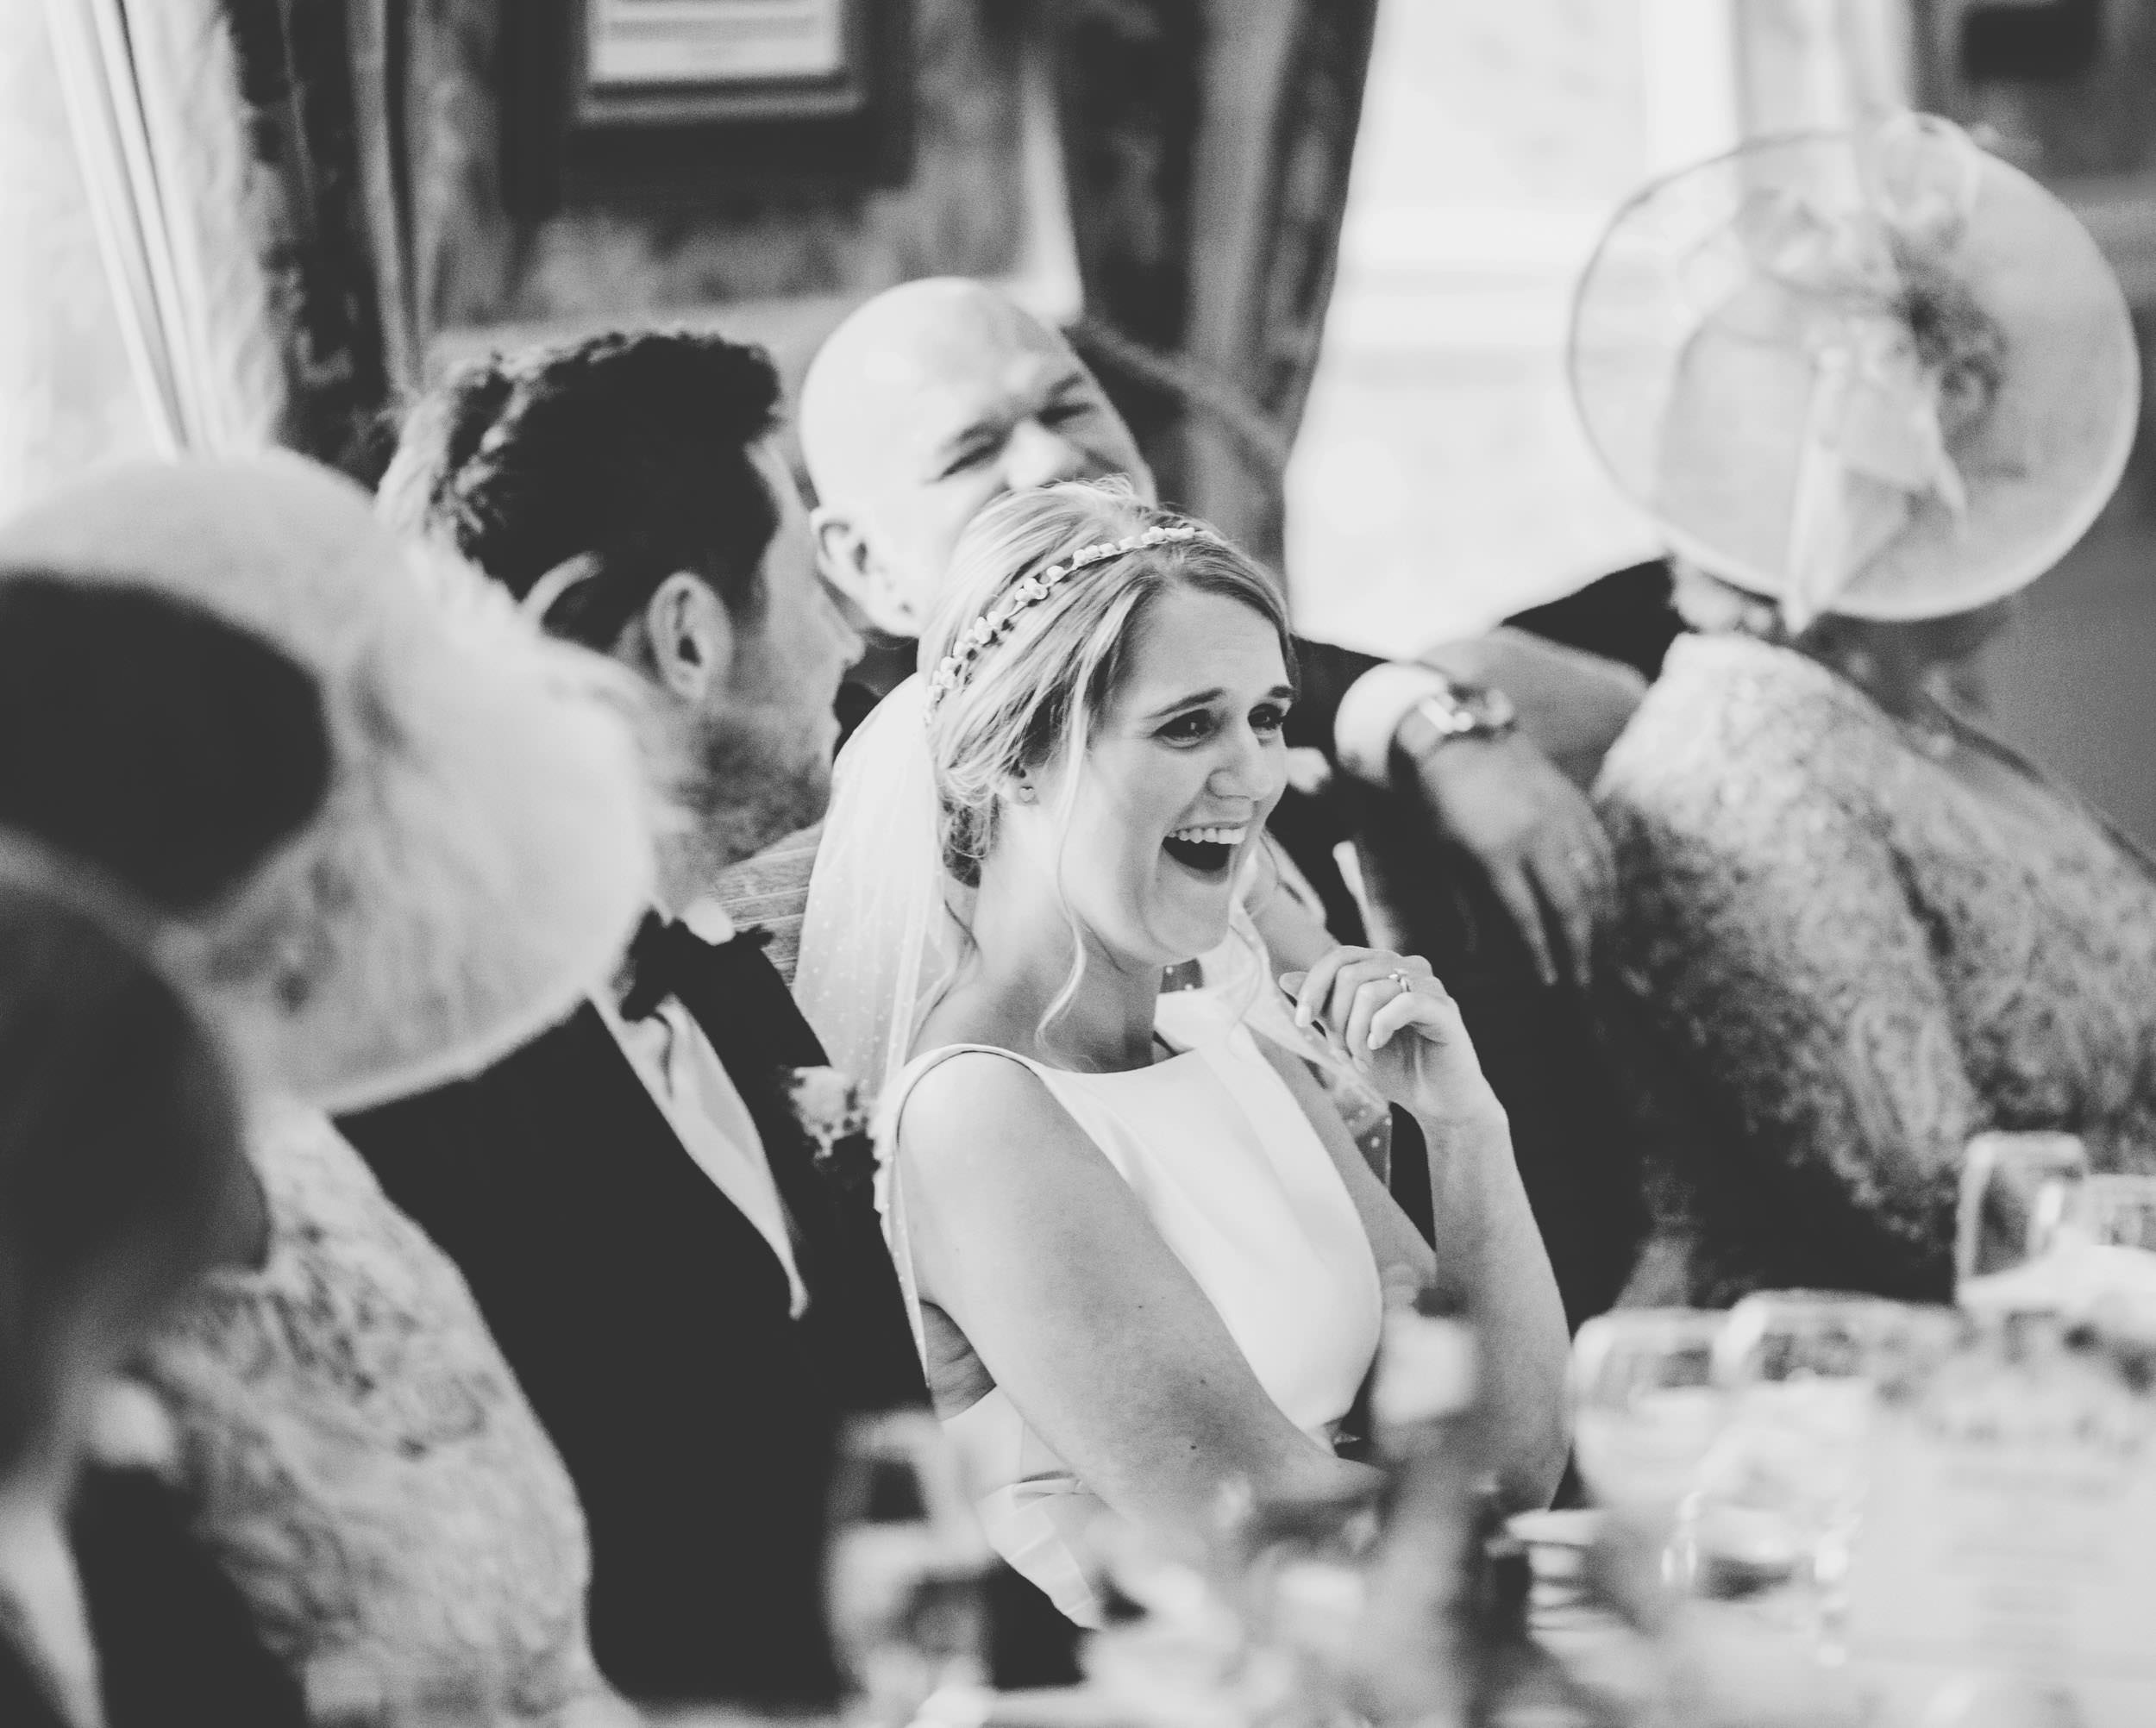 documentary wedding photography in the lakes - speeches